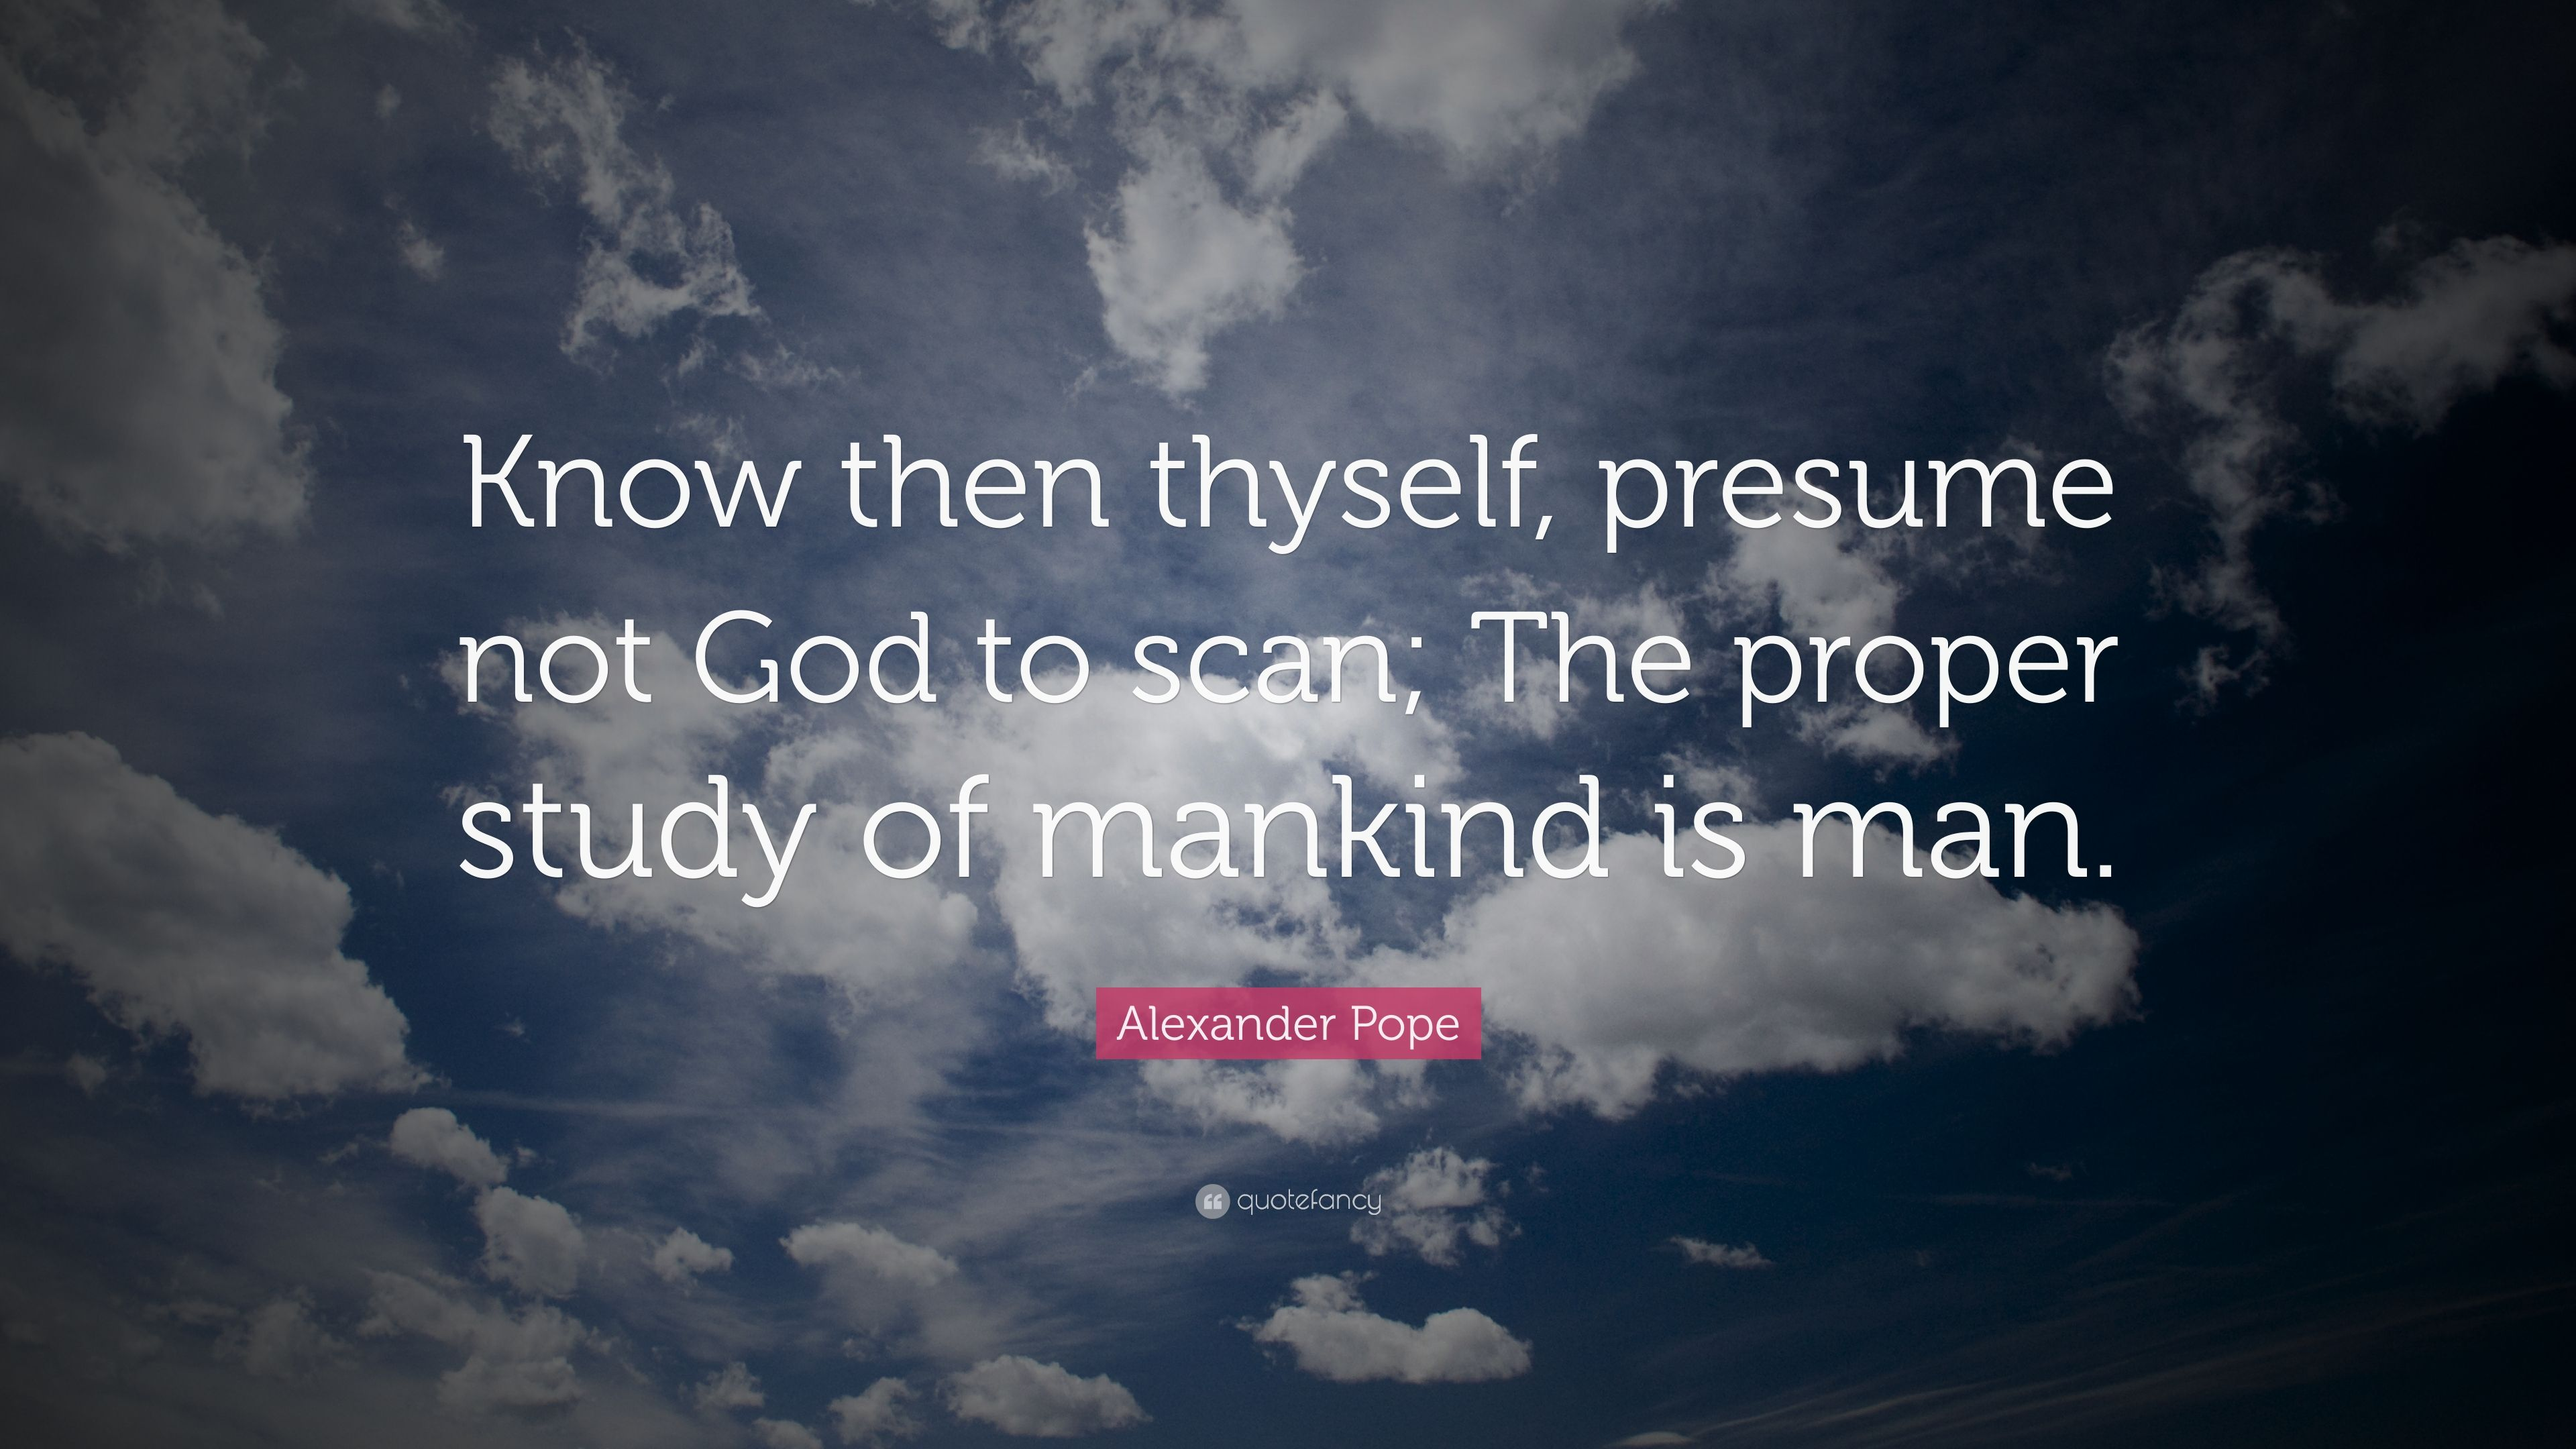 Alexander Pope Quote: U201cKnow Then Thyself, Presume Not God To Scan; The  Know Then Thyself Presume Not God To Scan